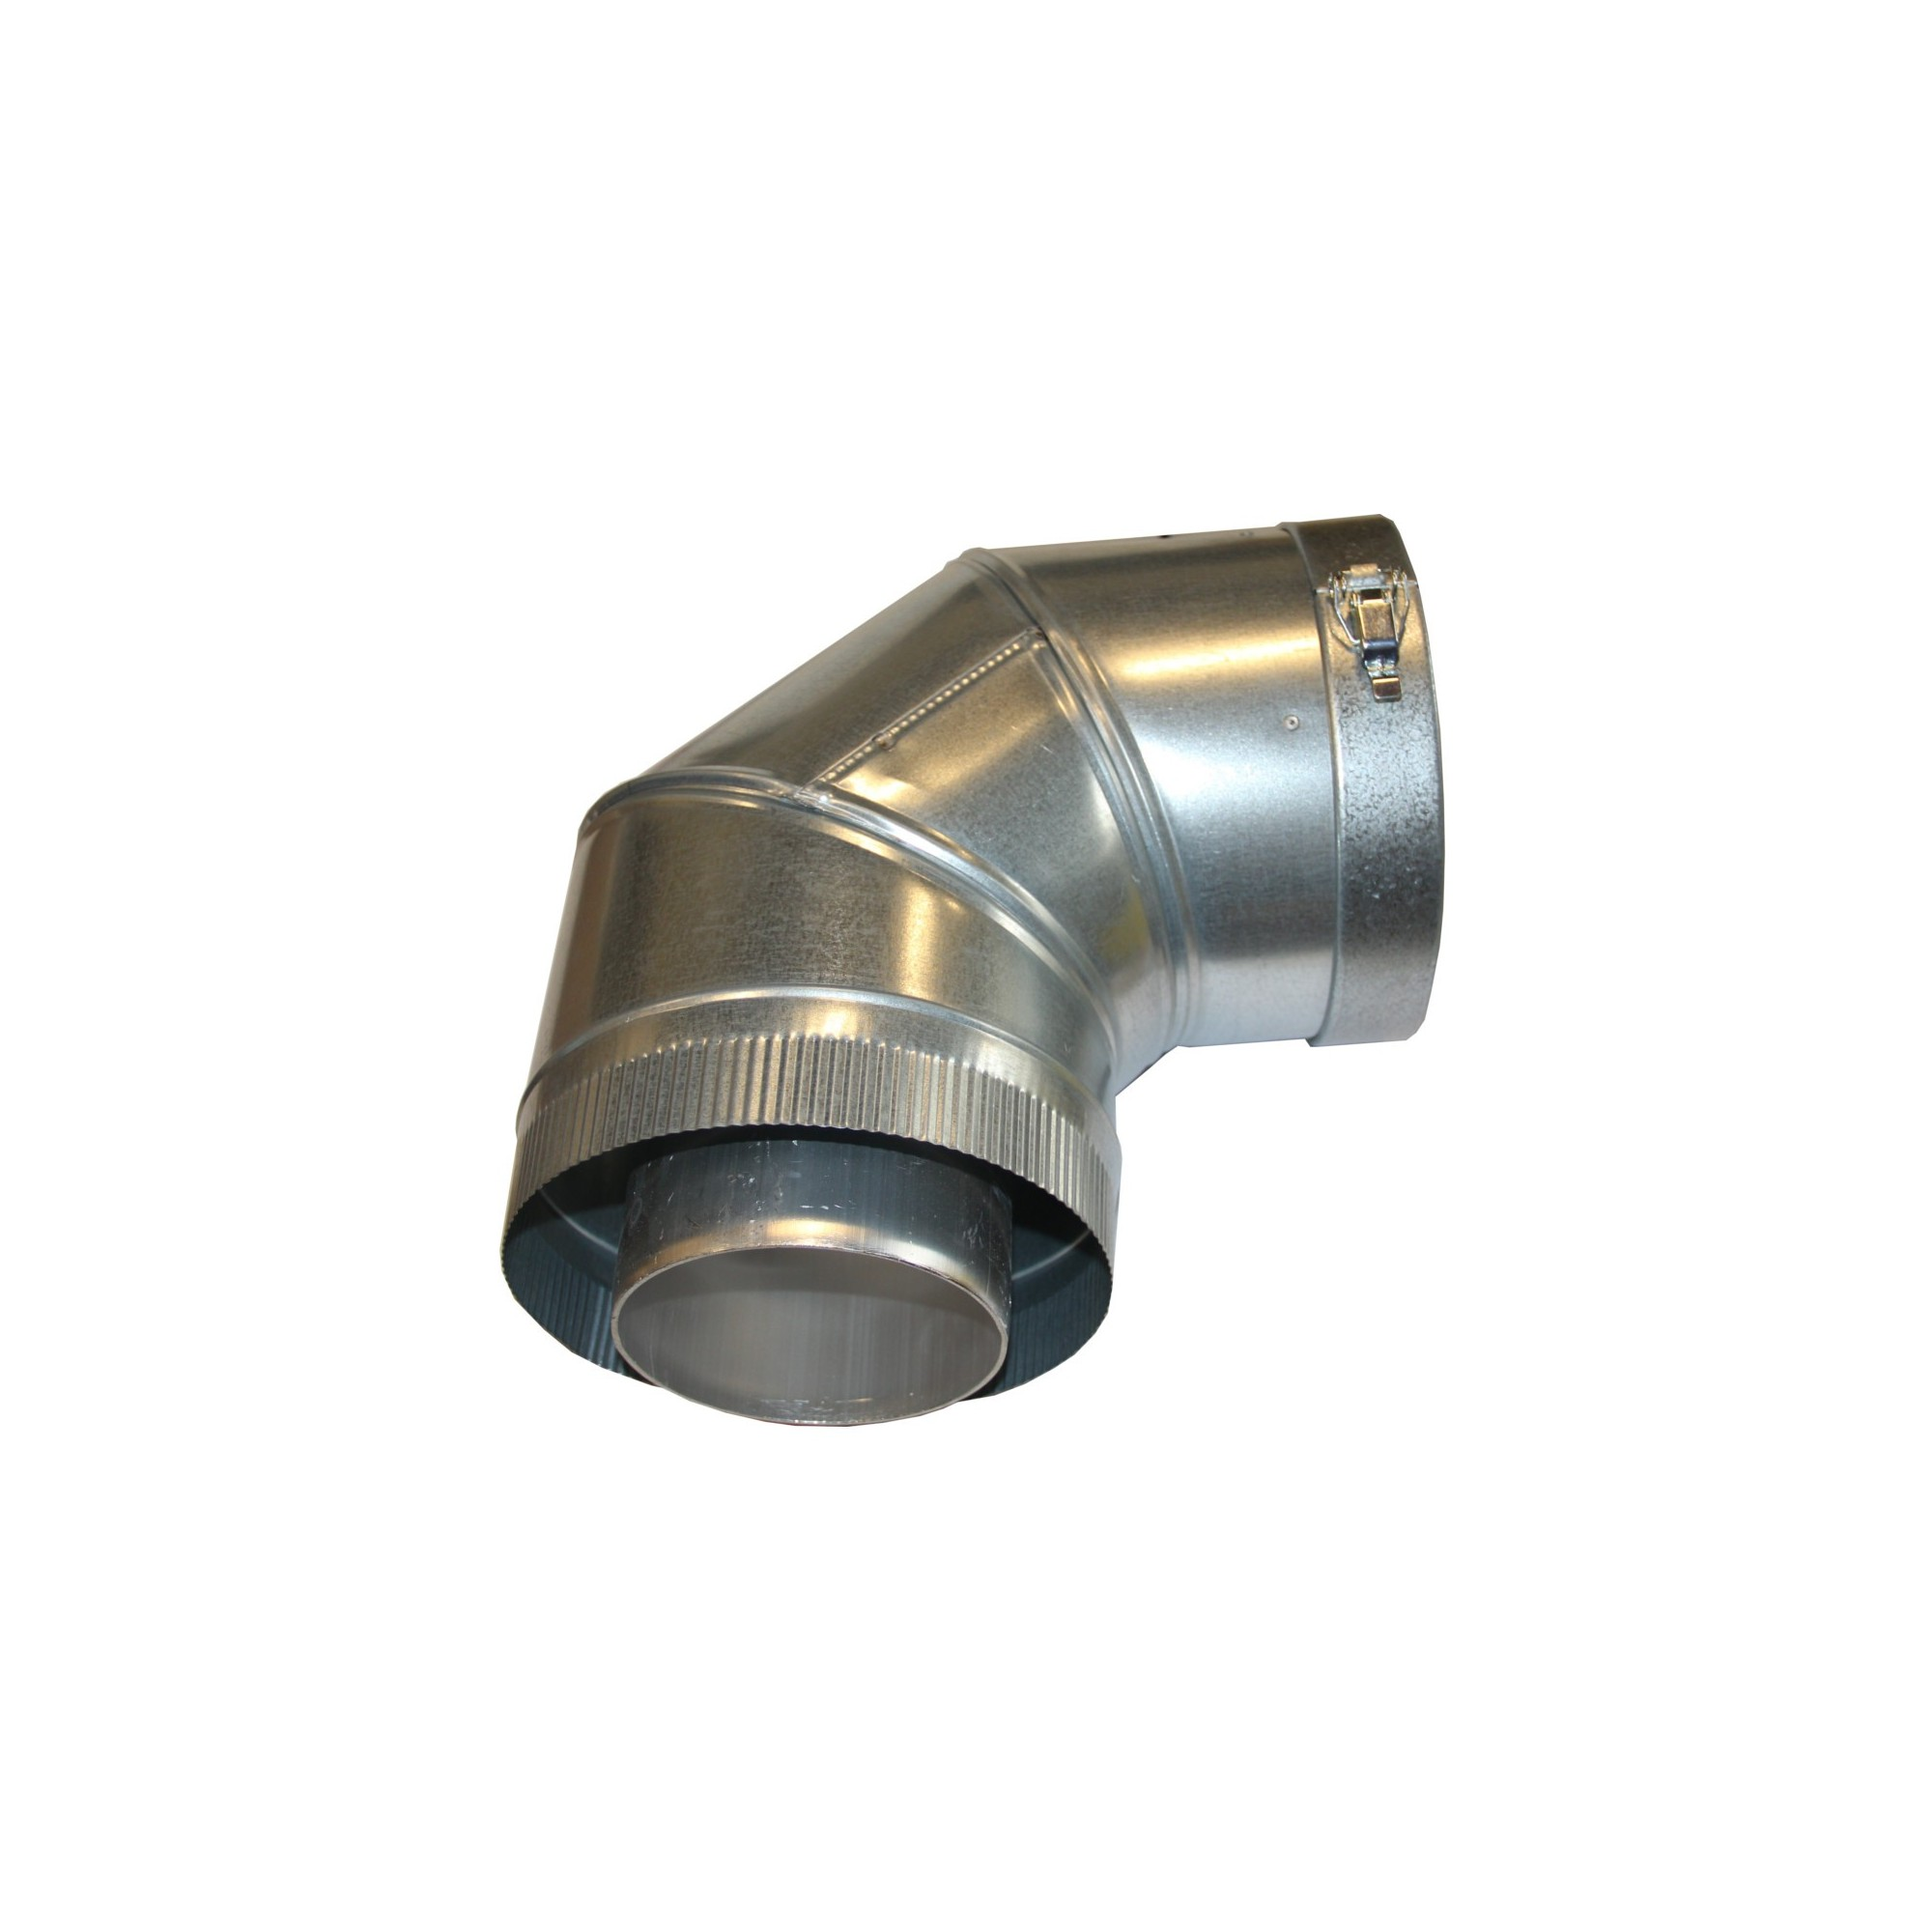 ELBOW 90° CONIC 130/200